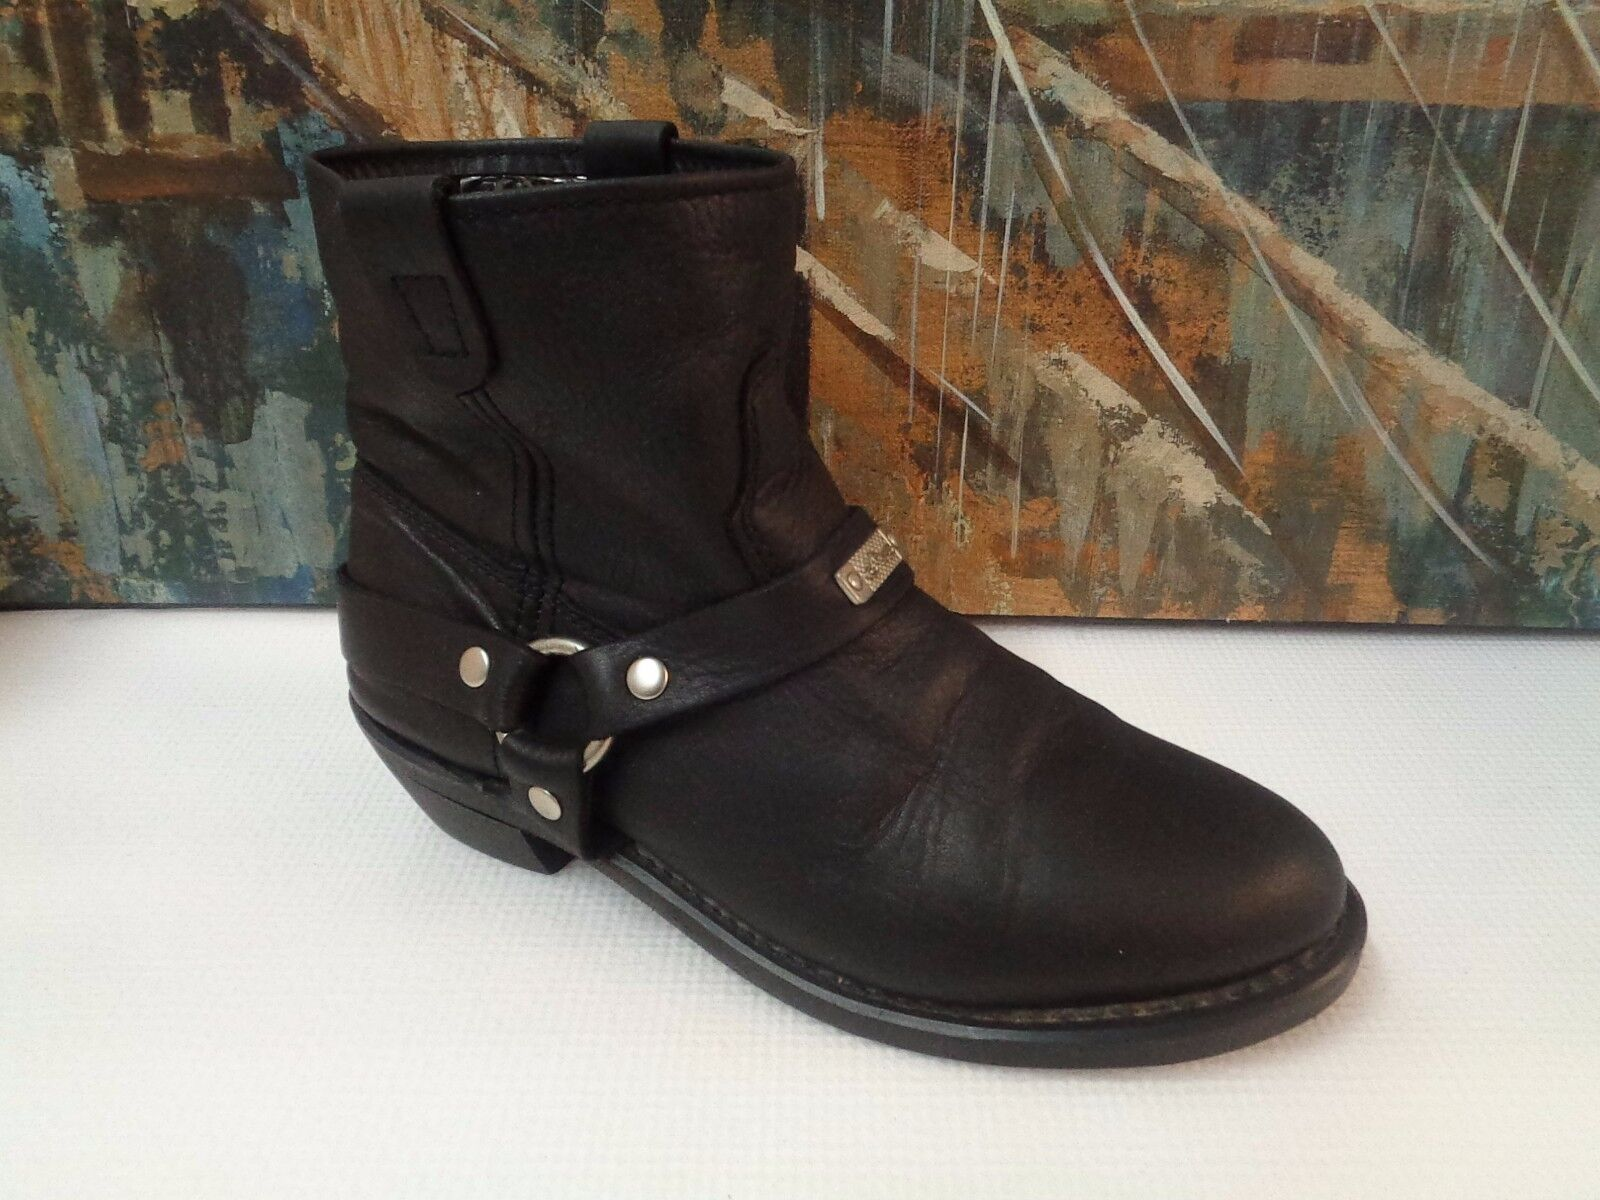 VINTAGE BLACK LEATHER HARNESS RIDING BOOTS EQUESTRIAN 9.5